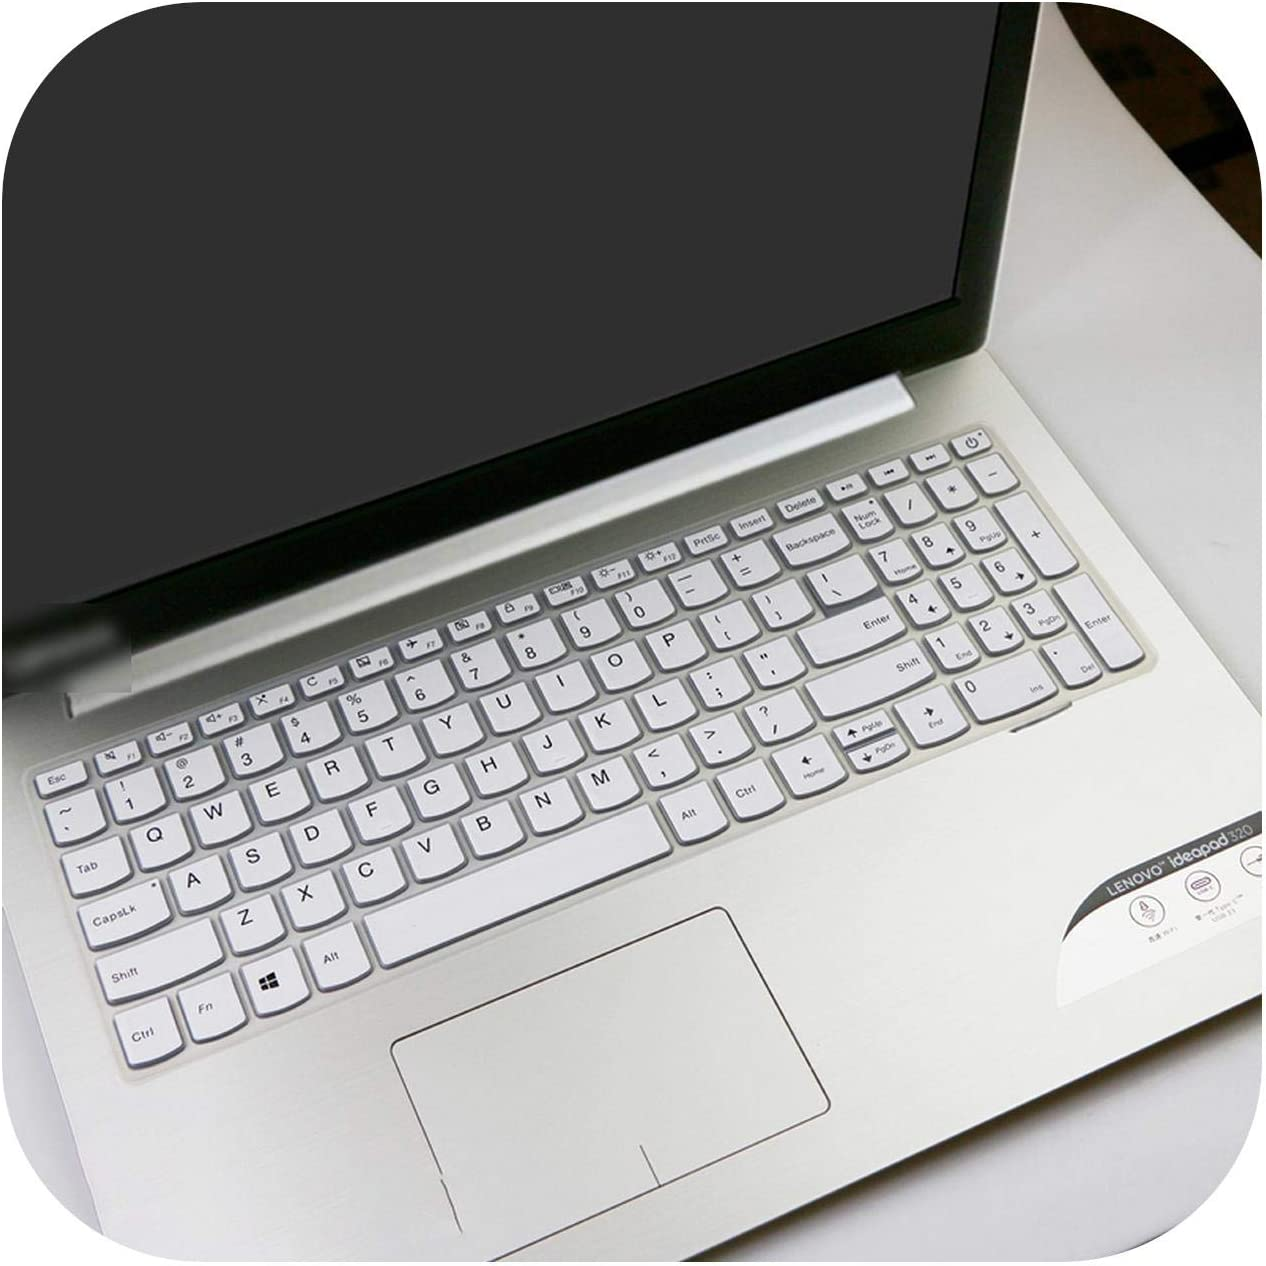 2020 for Lenovo Ideapad S145 15Ast S145 15Iwl S145 14Ast 15Iwl 330 320 15.6 Inch Laptop Notebook Keyboard Cover Skin Protector-White